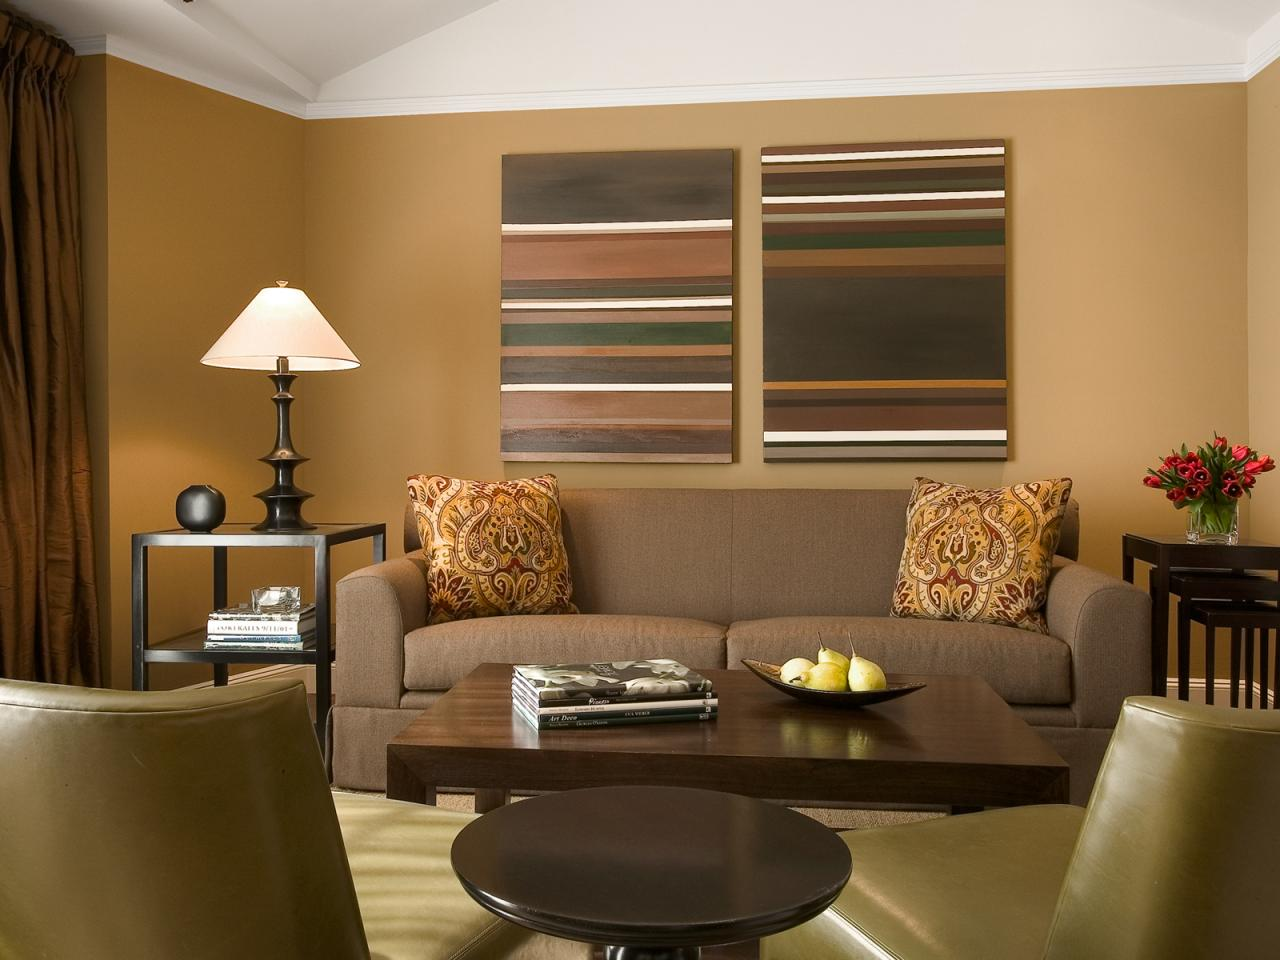 Top living room colors and paint ideas living room and - Paint schemes for living room ...